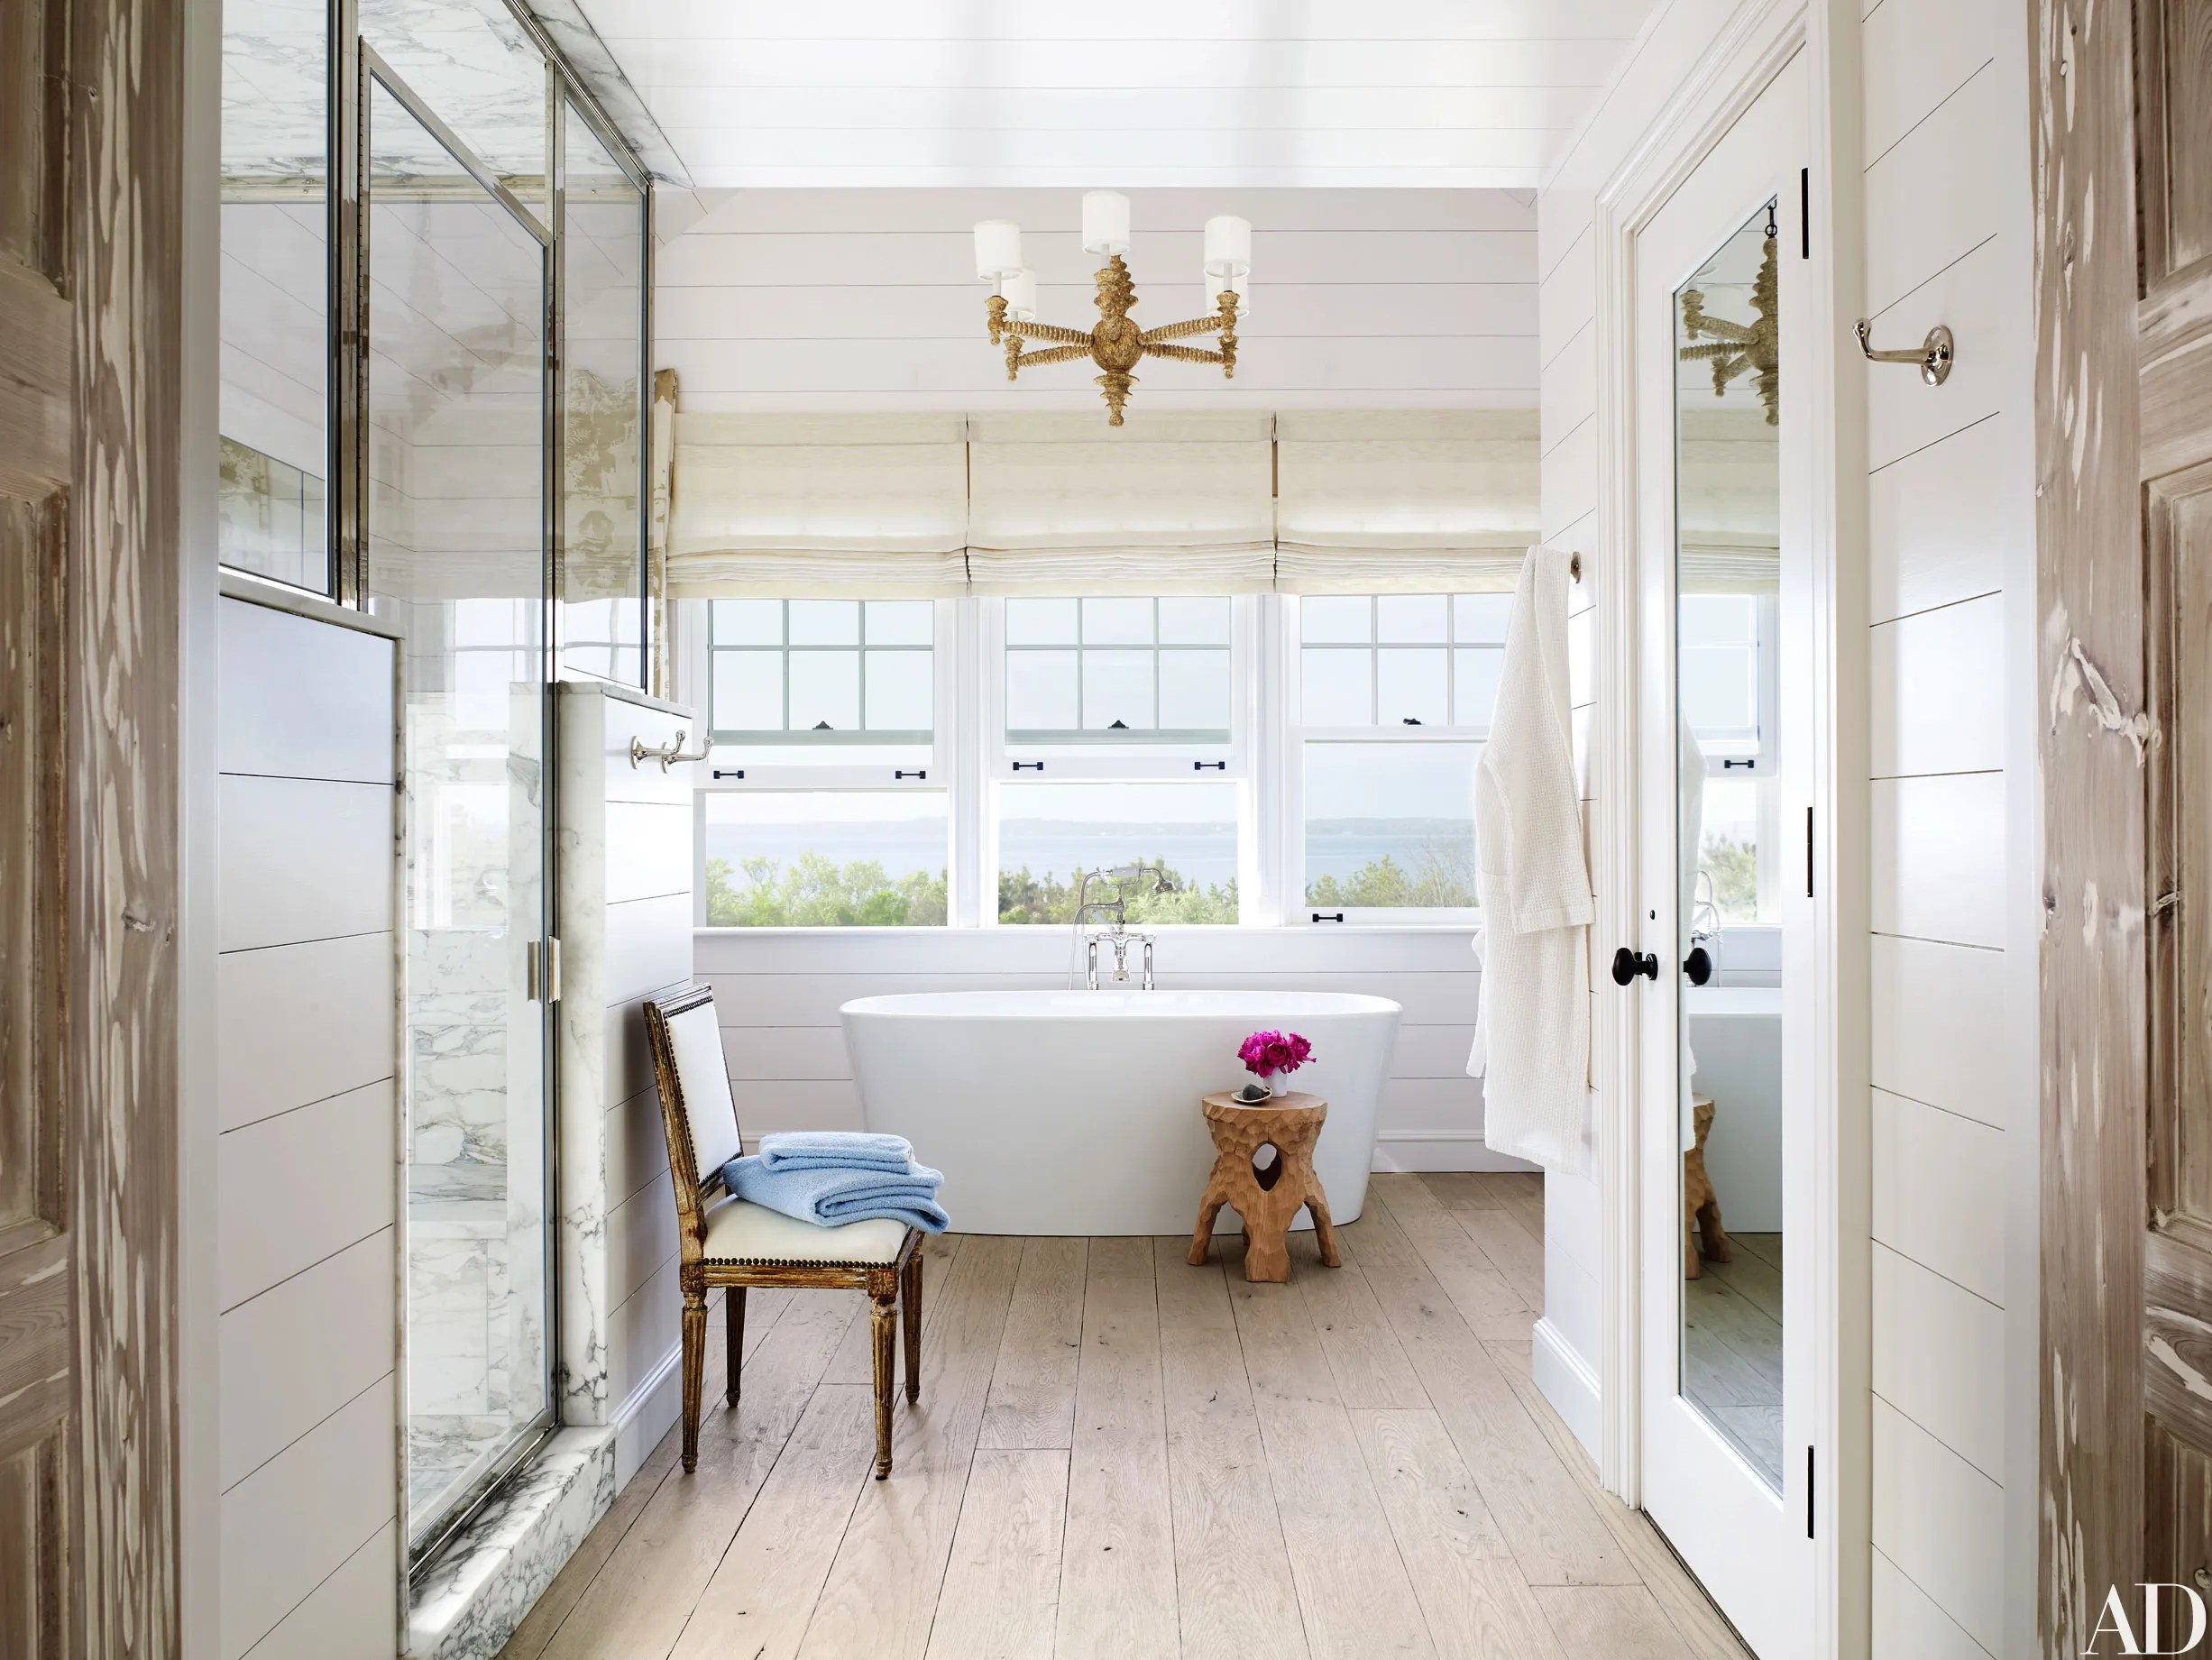 Best Kitchen Gallery: 37 Bathroom Design Ideas To Inspire Your Next Renovation Photos of New England Bathrooms Designs  on rachelxblog.com